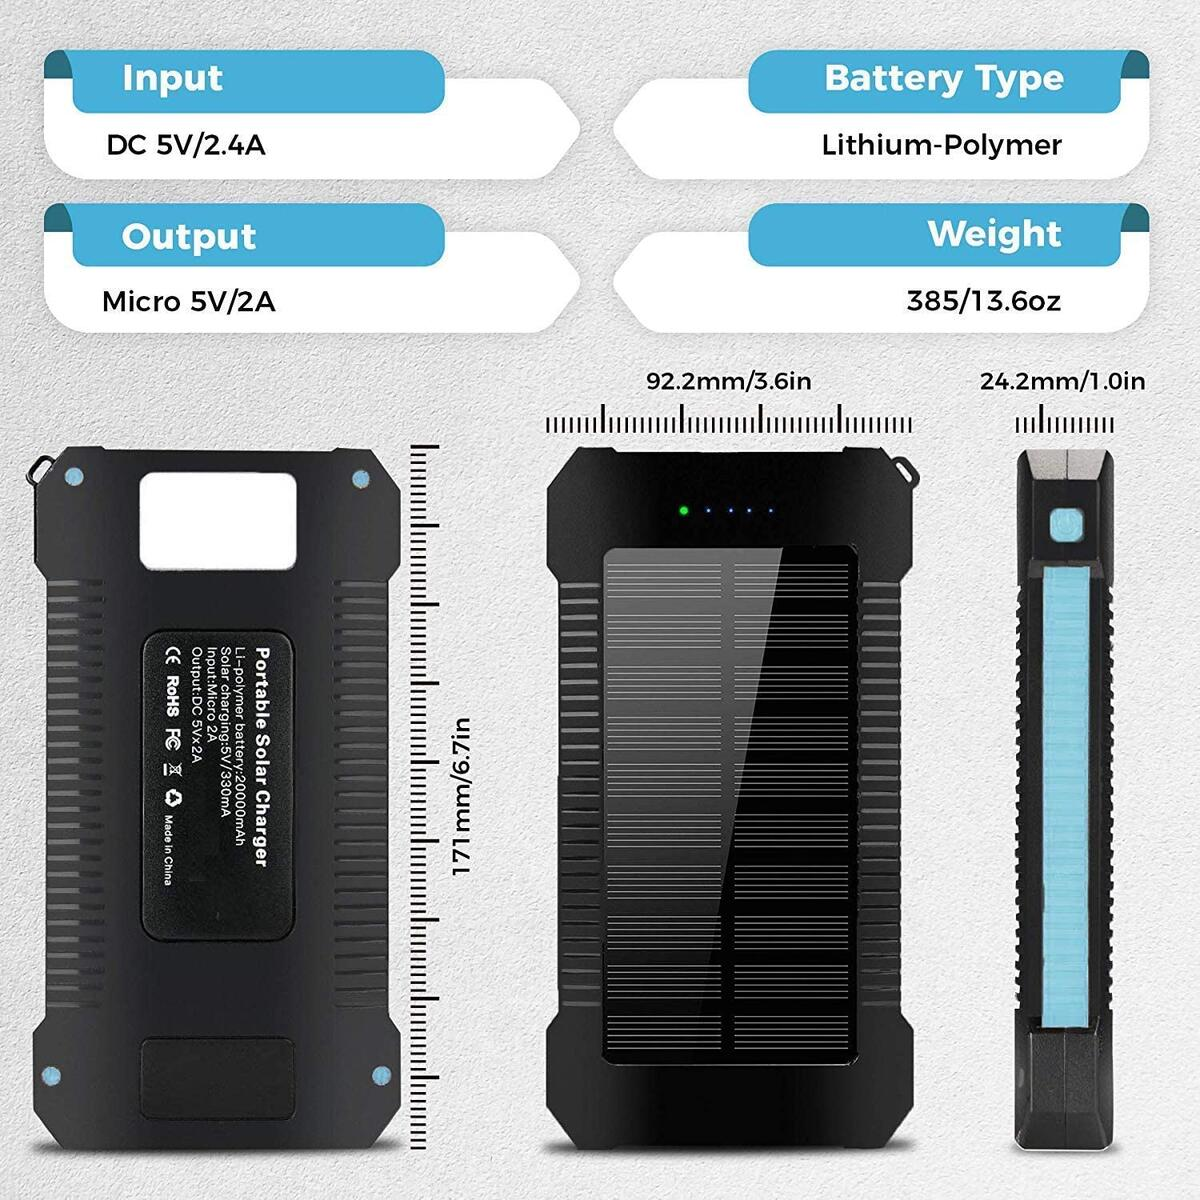 Solar Power Bank 20000mAh Portable Phone Charger Waterproof Battery Packs with Dual Ports